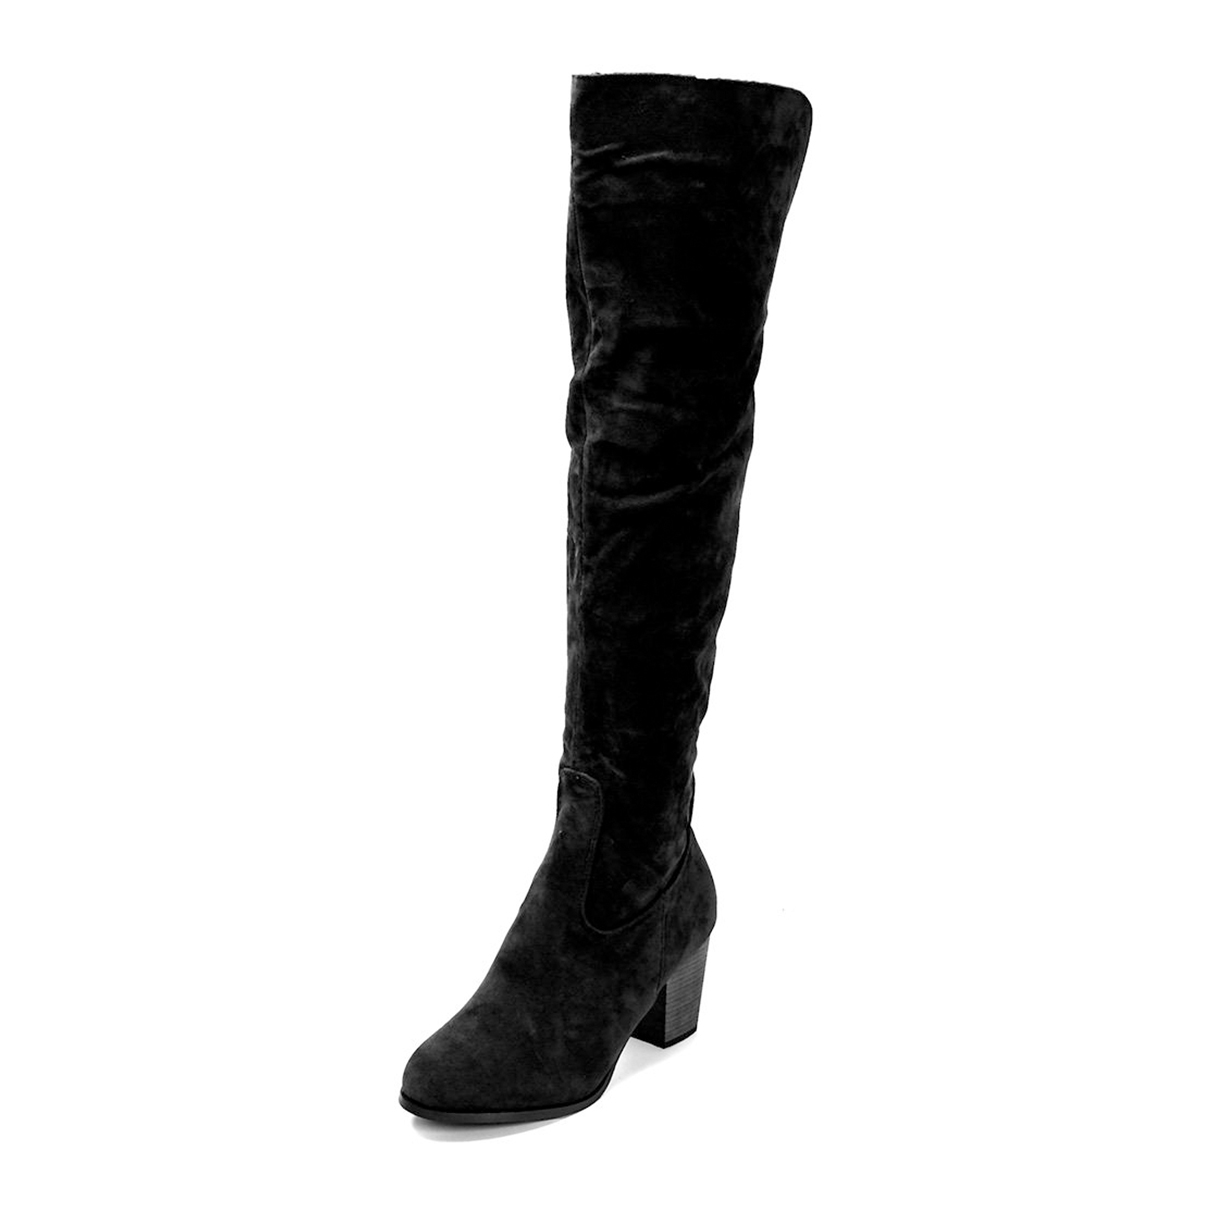 Black Nubuck Leather Over The Knee Boots